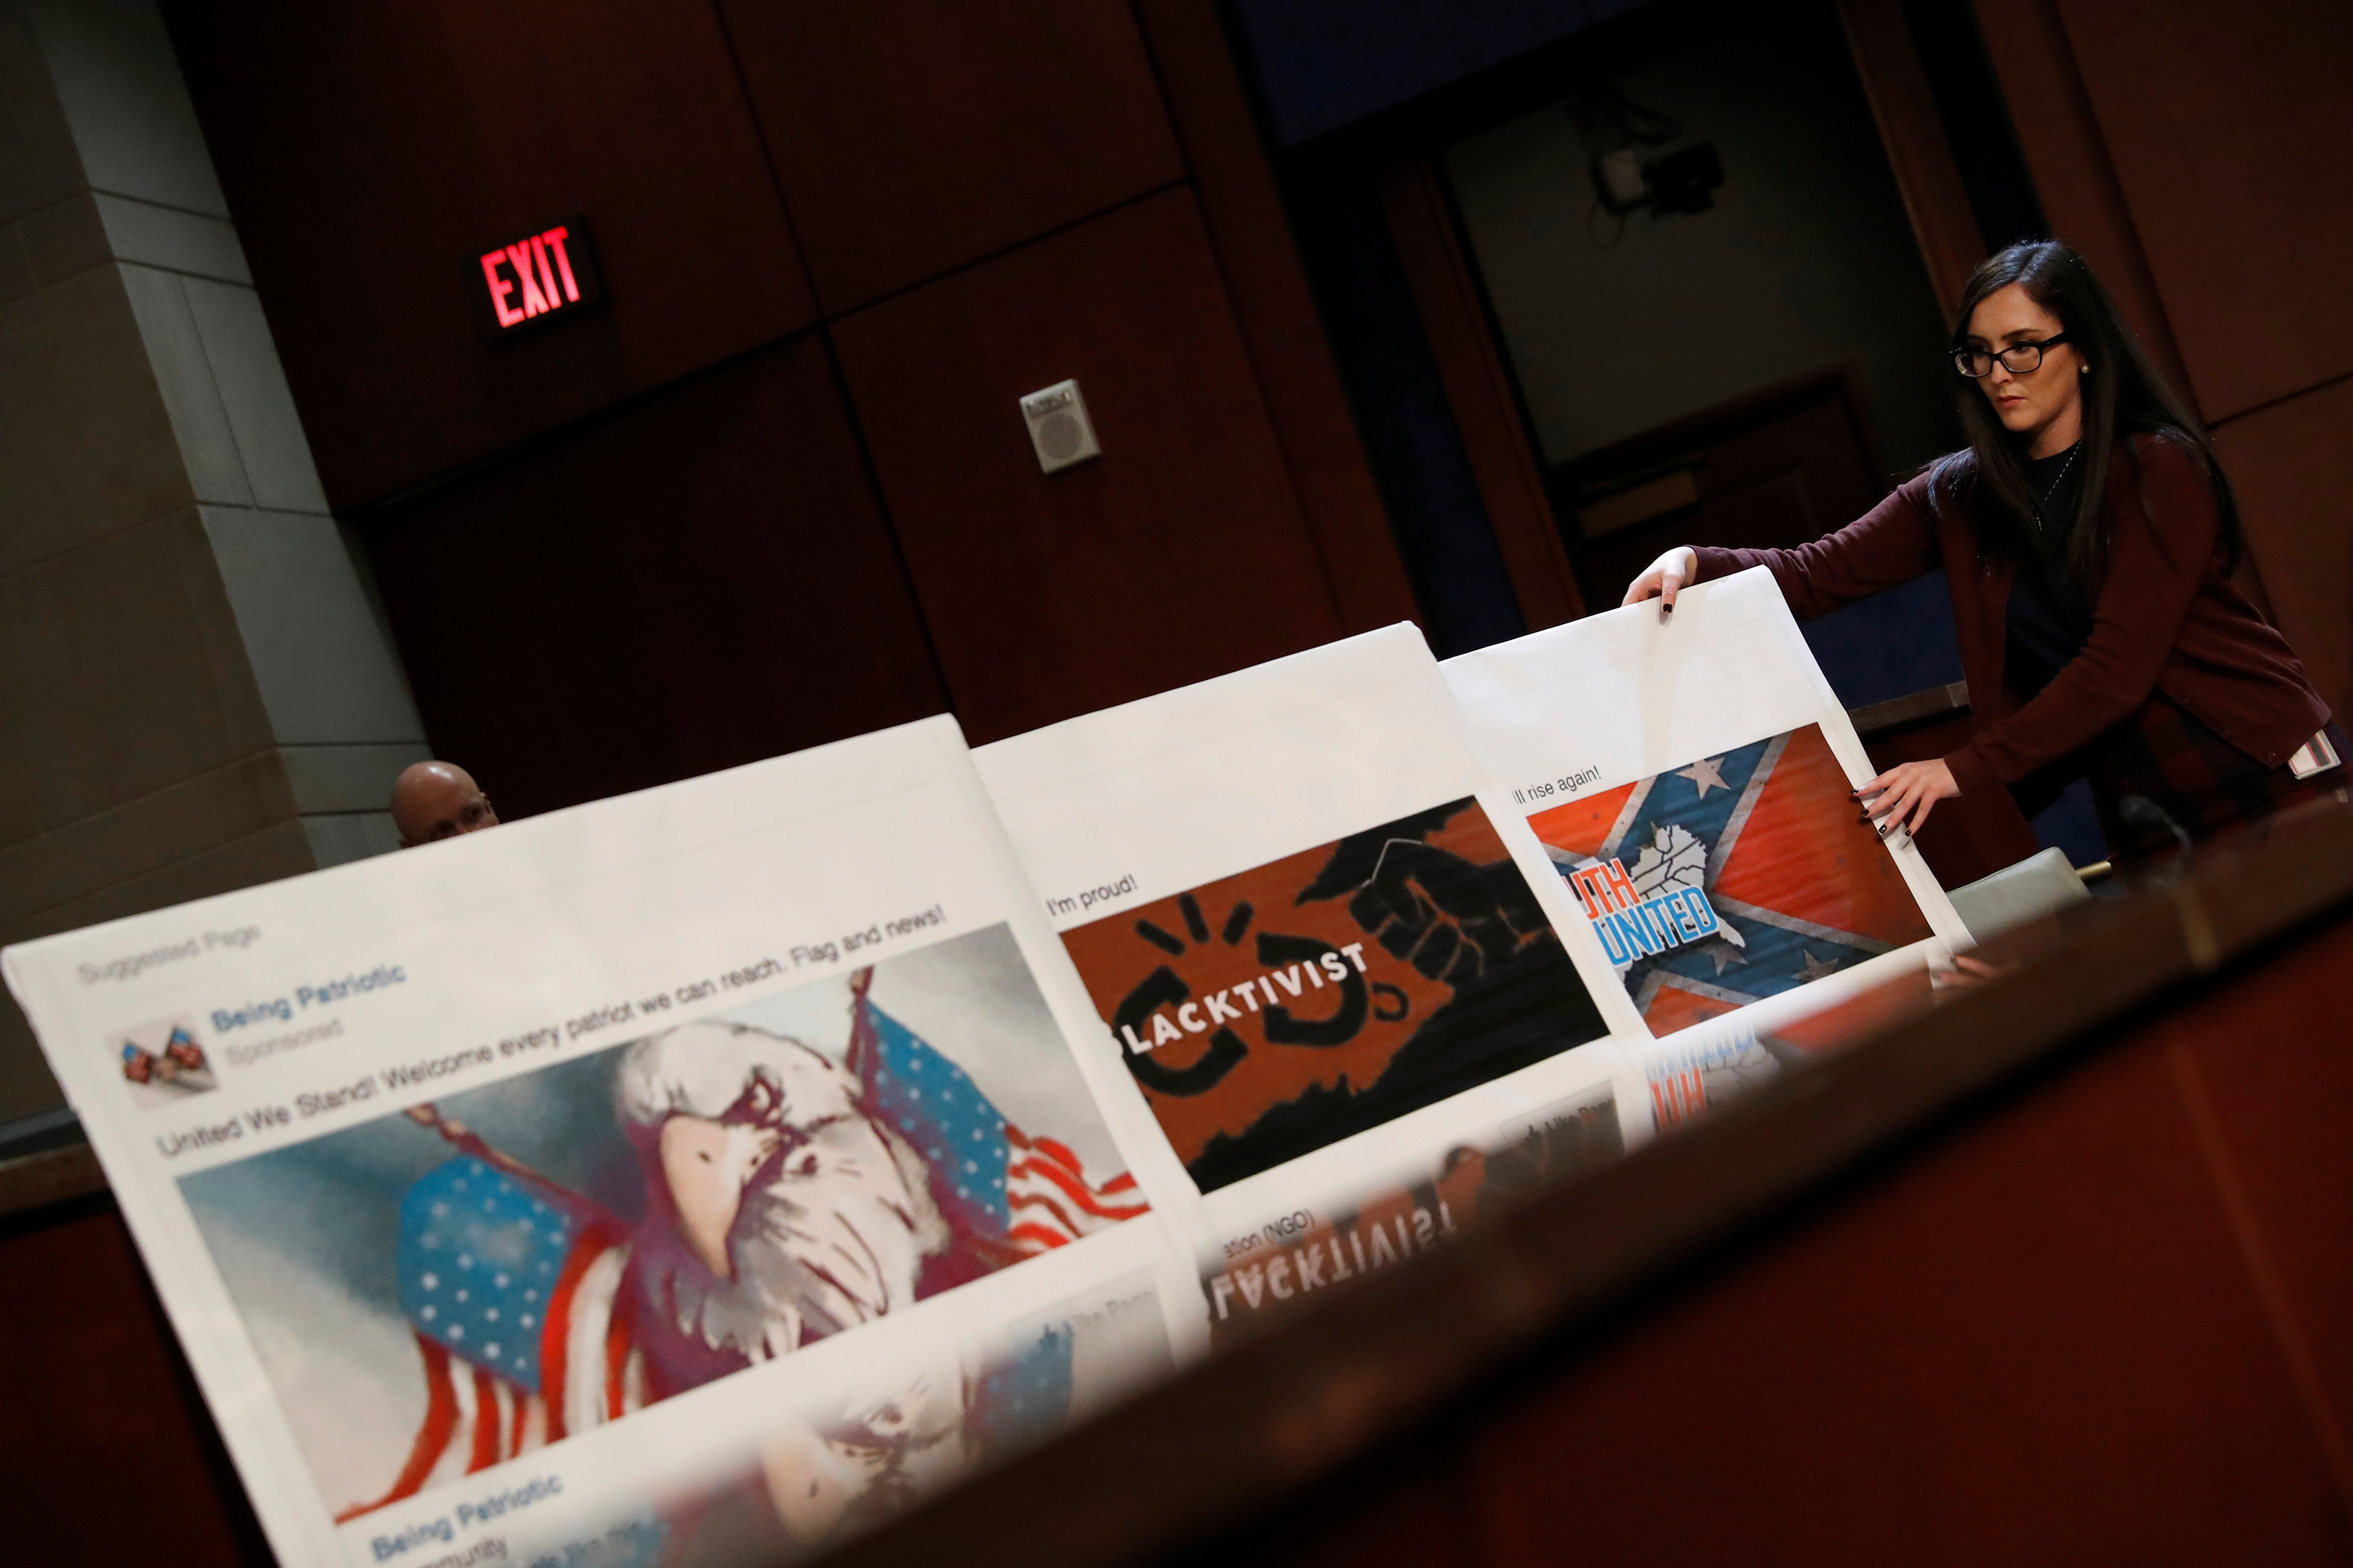 An aide puts out examples of Facebook pages, as executives appear before the House Intelligence Committee to answer questions related to Russian use of social media to influence U.S. elections, on Capitol Hill in Washington, U.S., November 1, 2017.